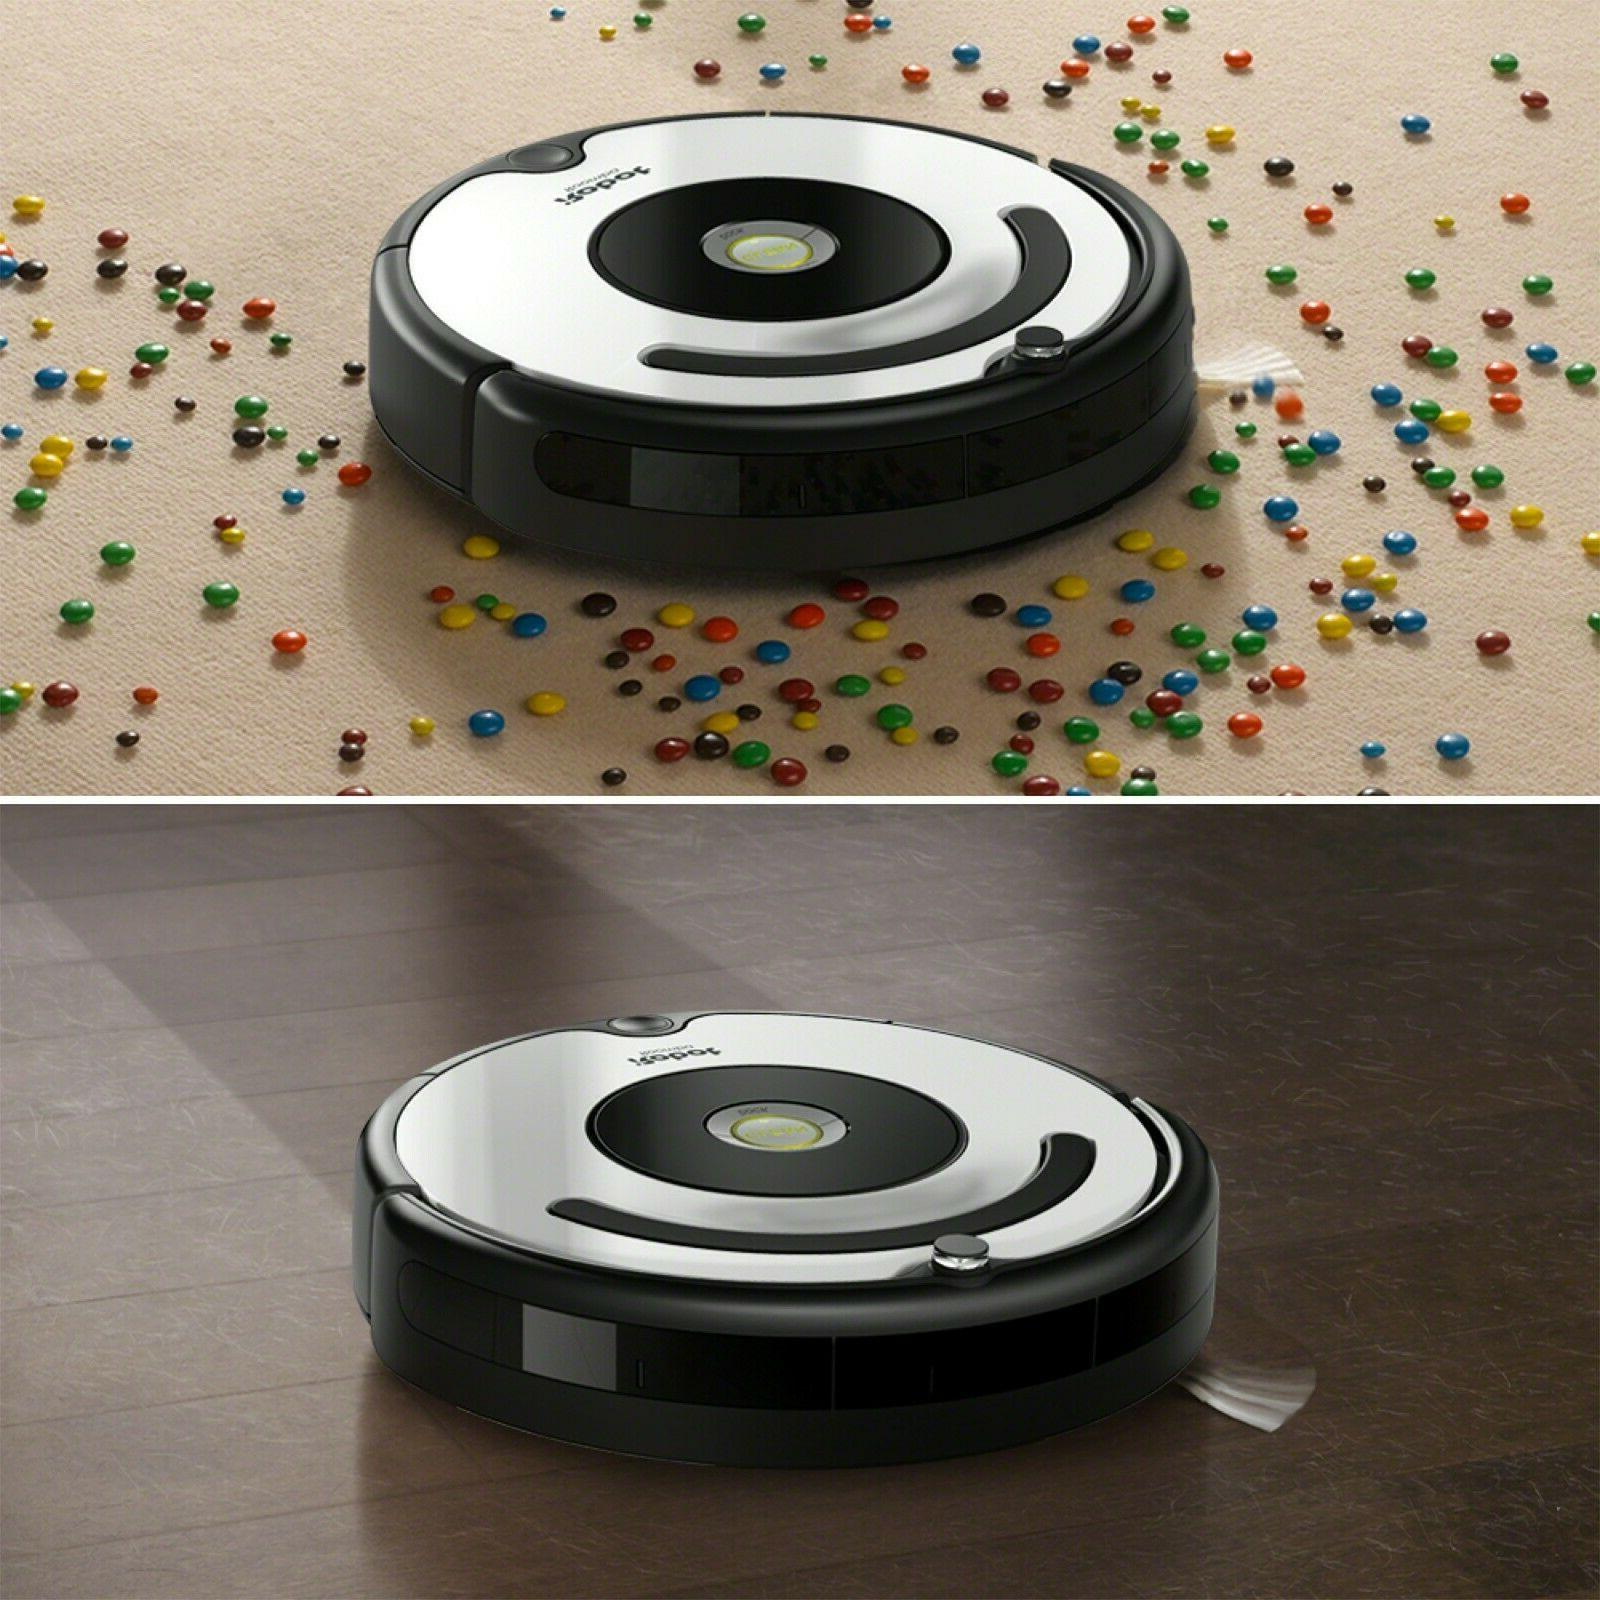 Cleaning Robot - Manufacturer Certified